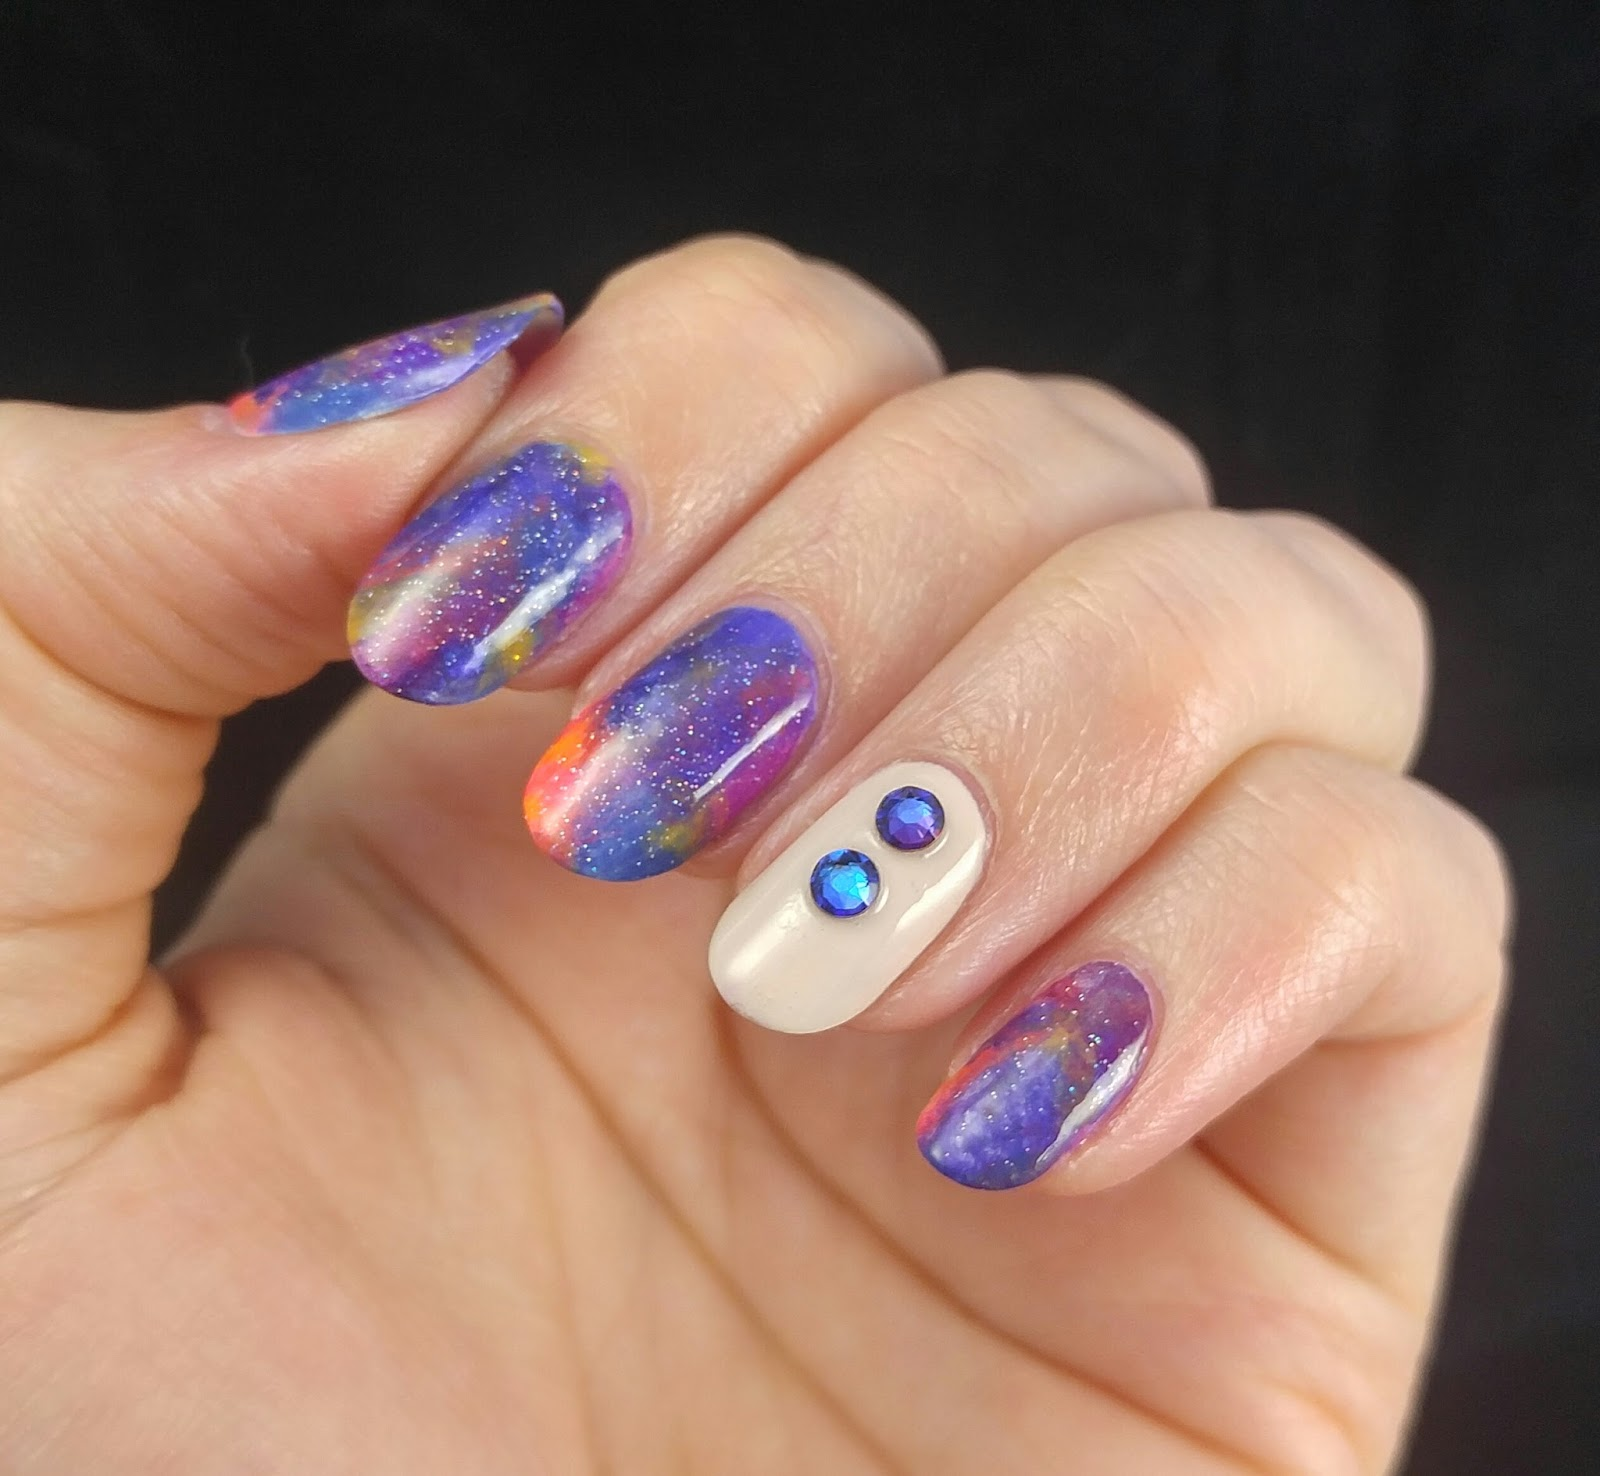 Nerdy for Nails: January 2017